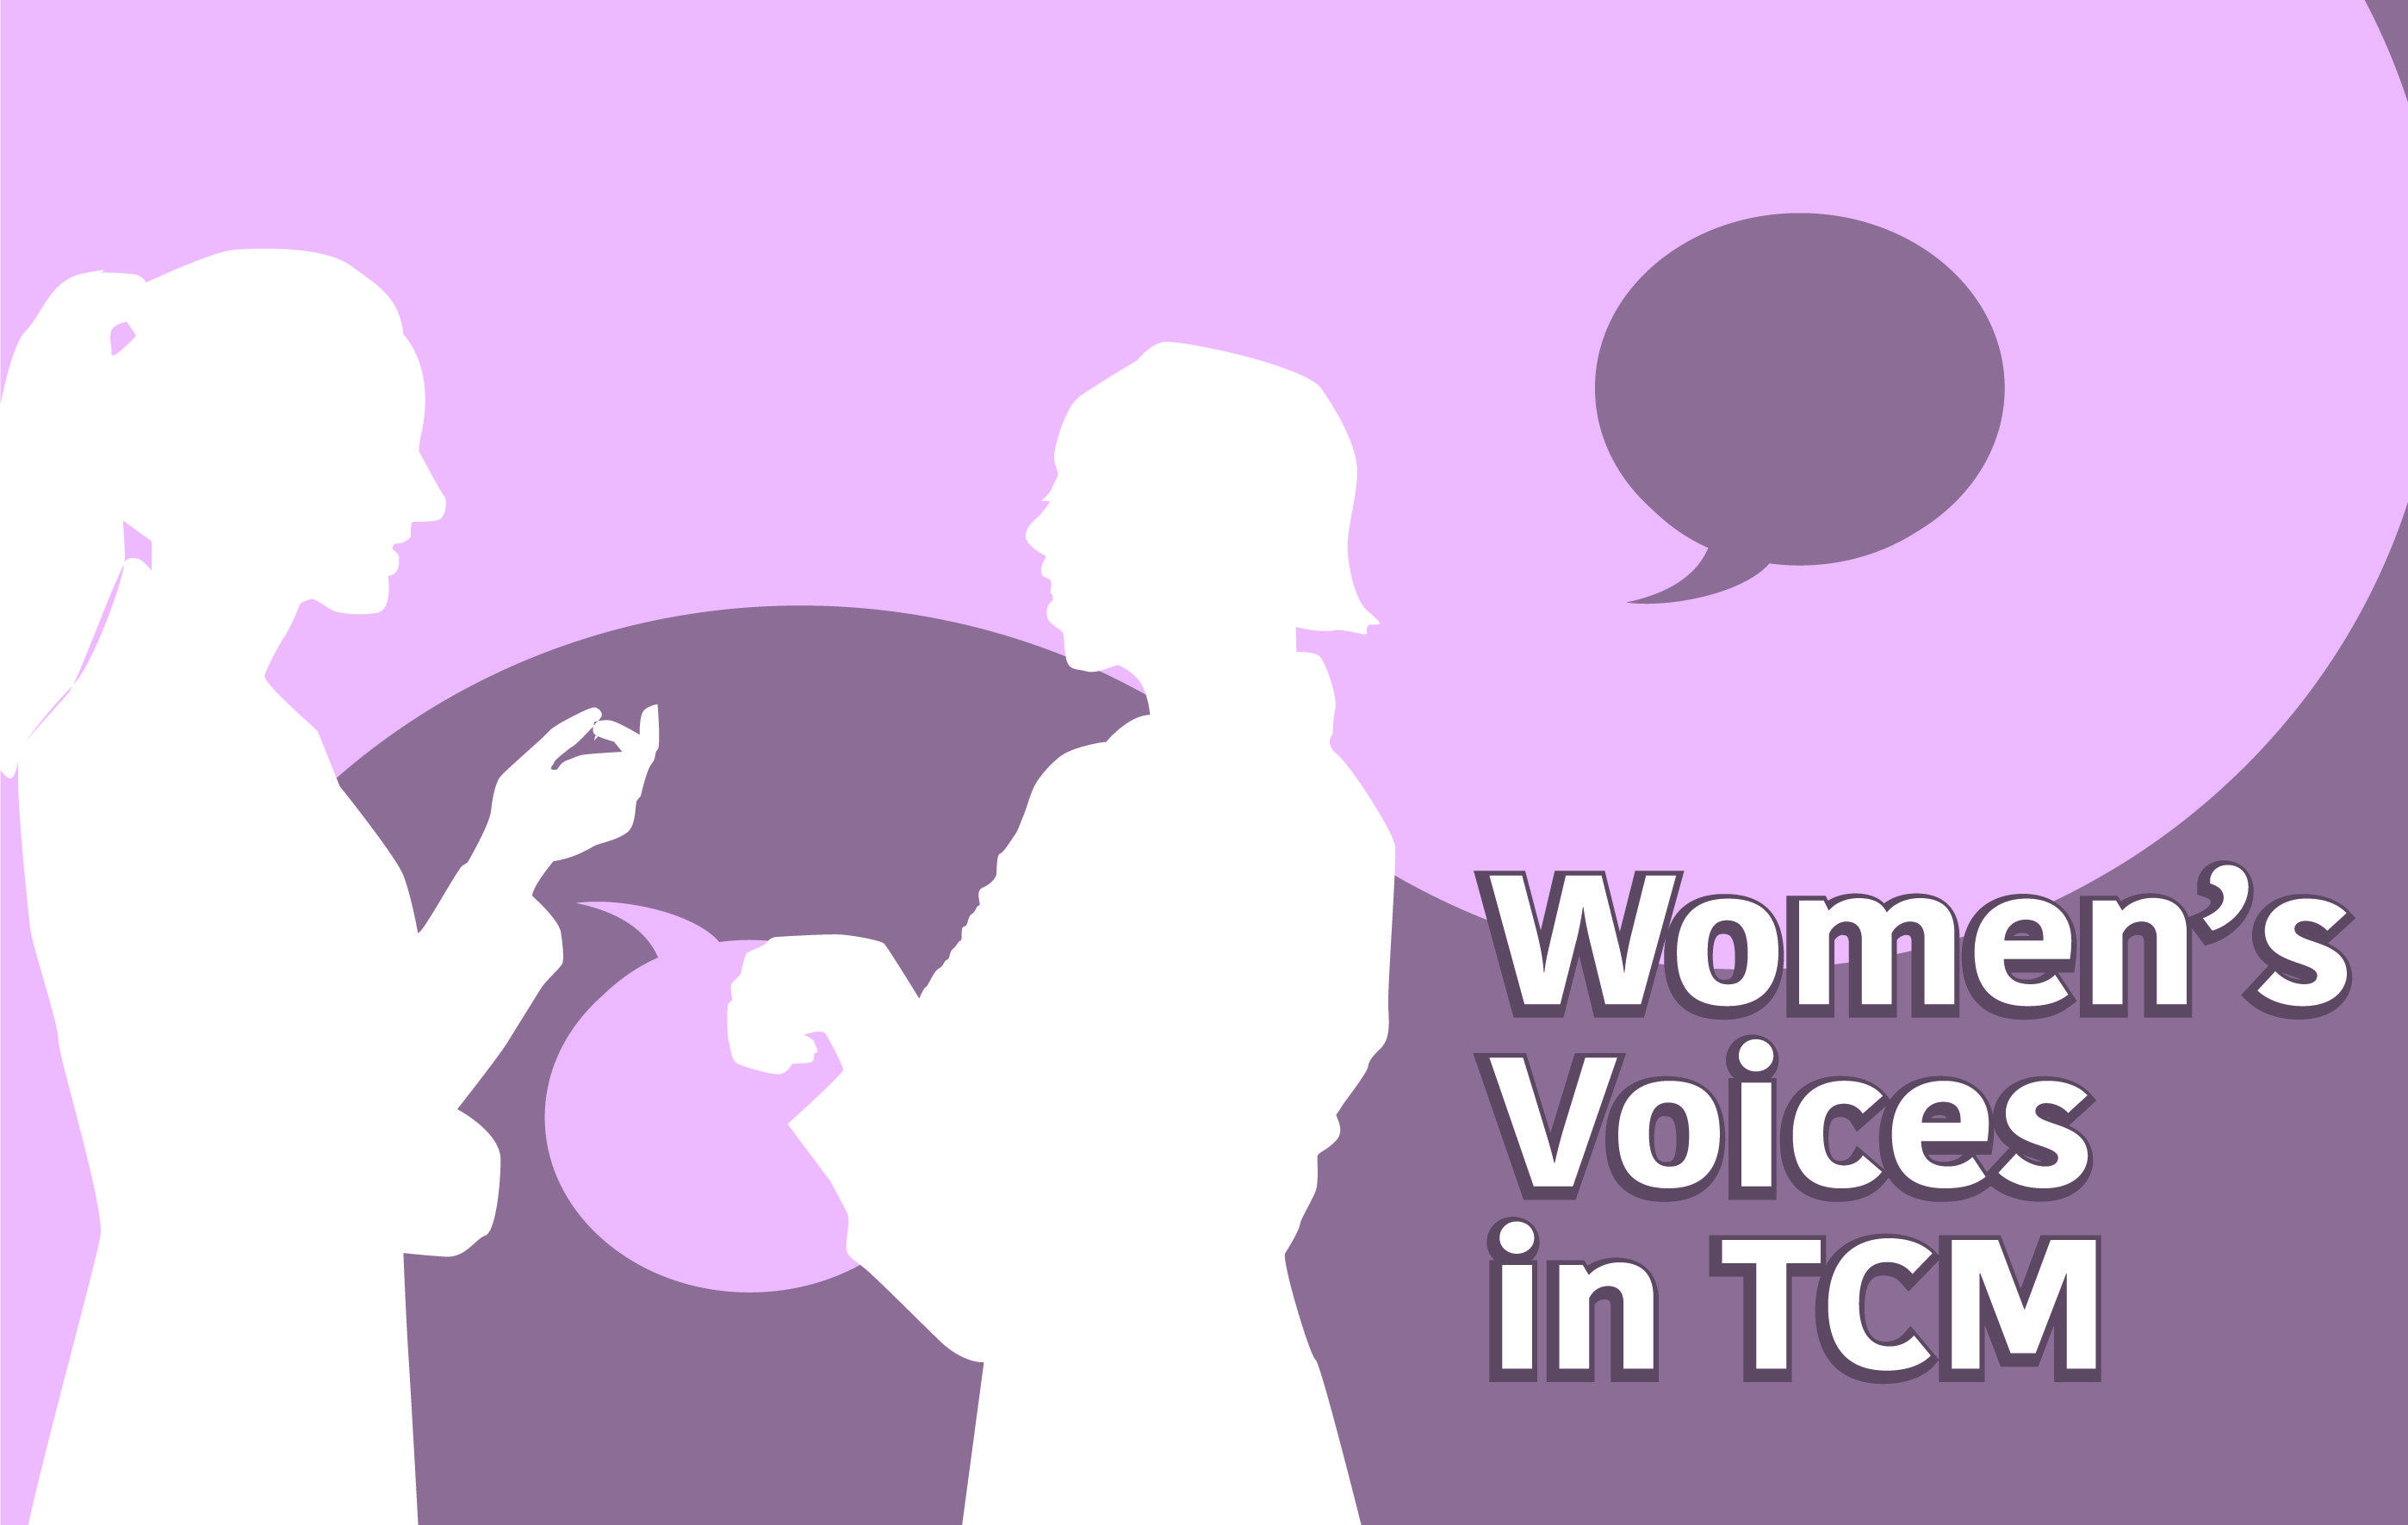 Women's Voices in TCM